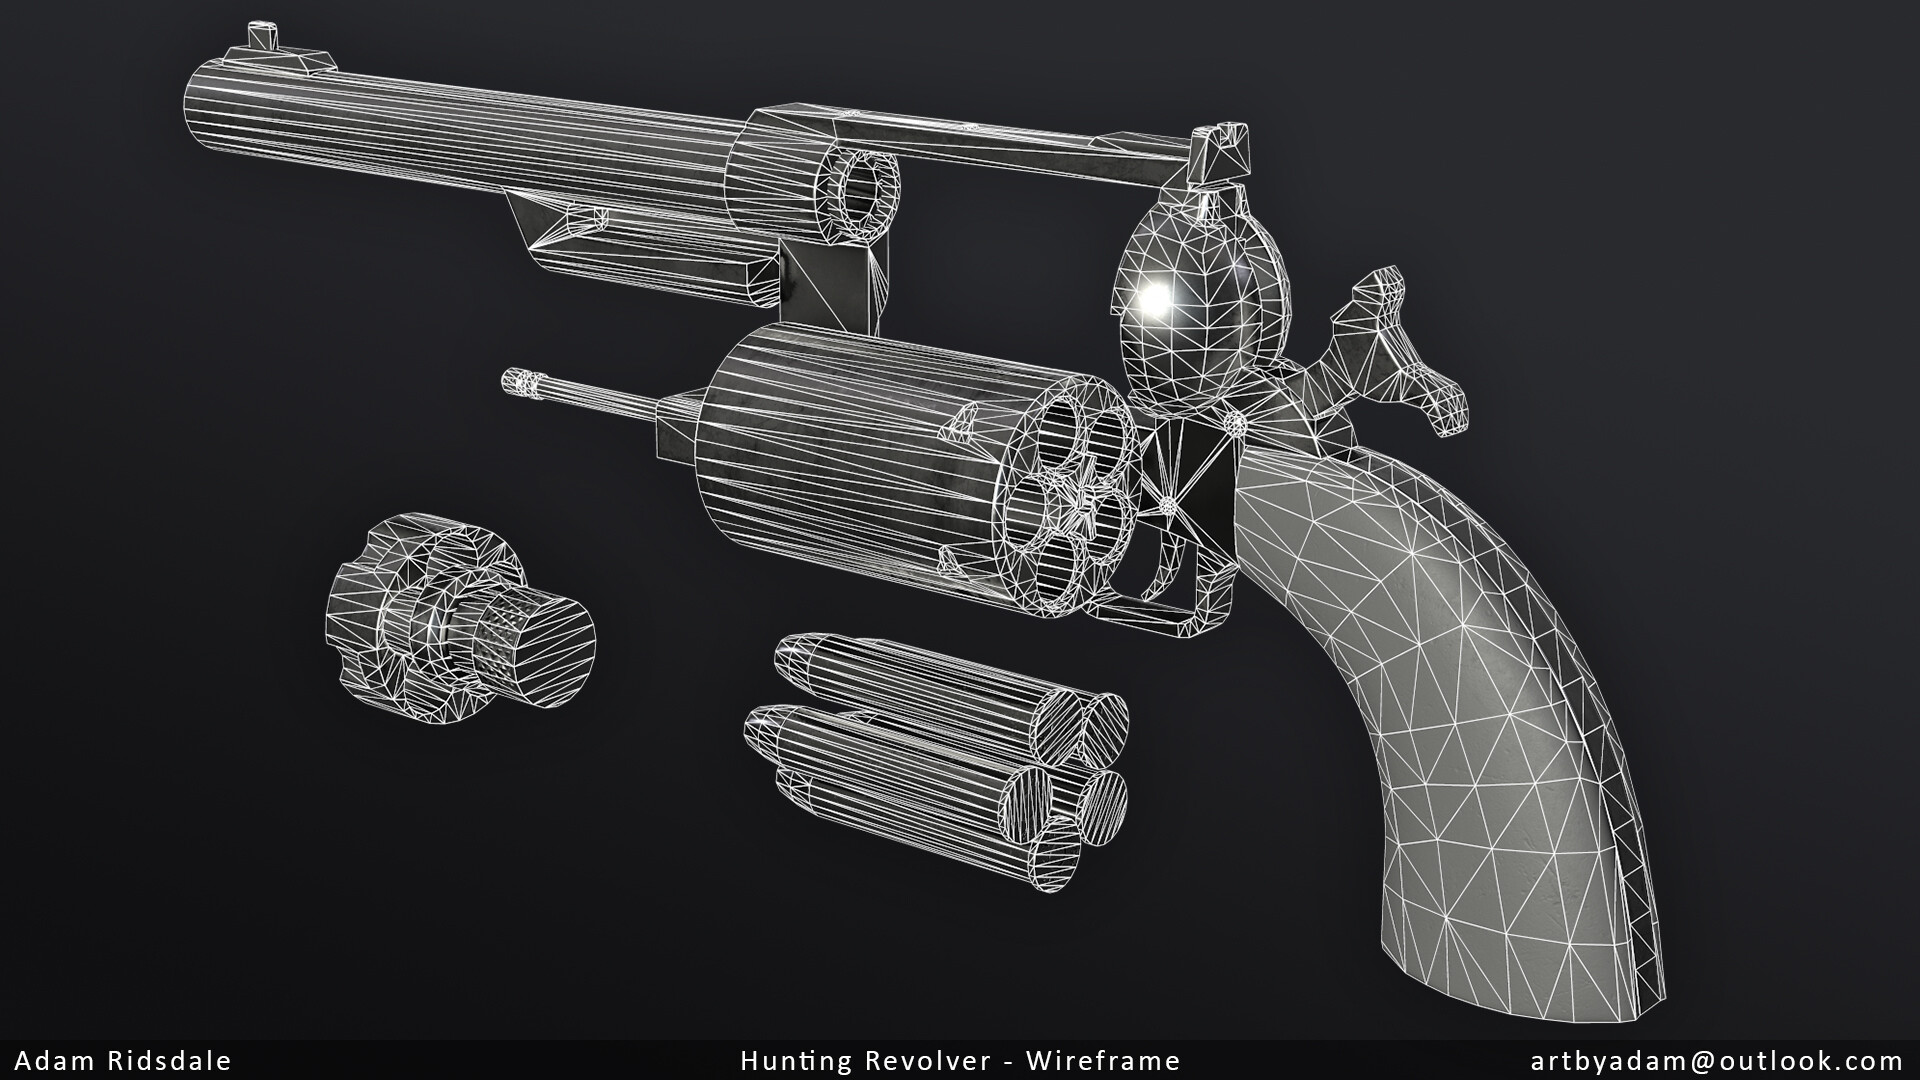 Adam ridsdale shot wireframe 2